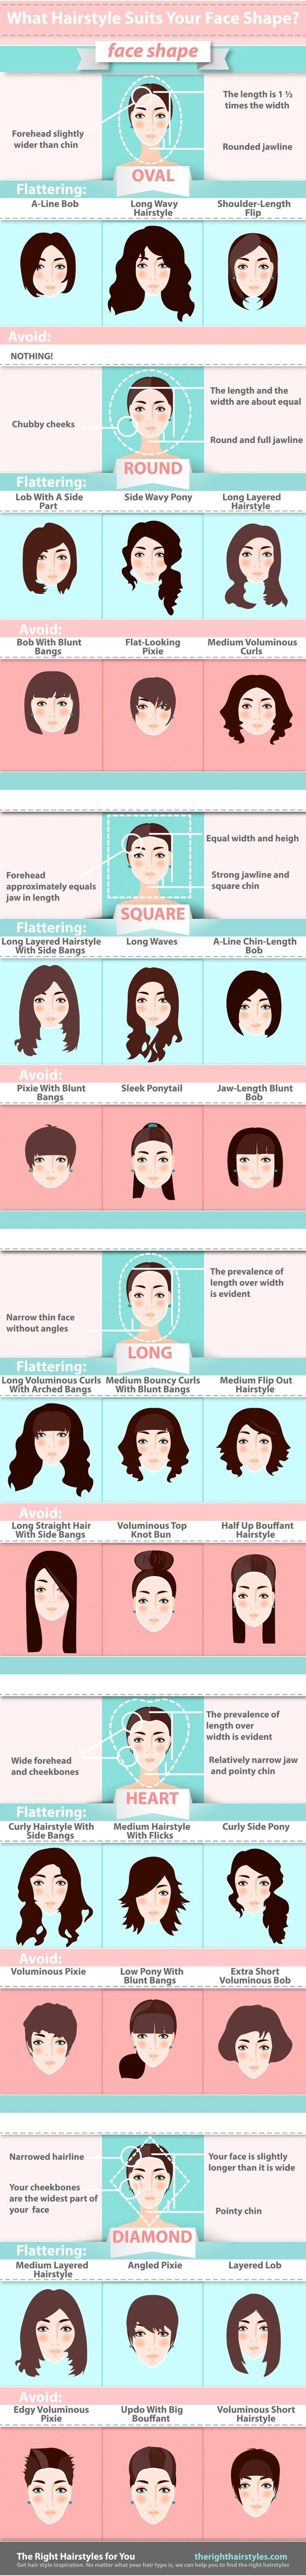 best 25+ face shape hairstyles ideas on pinterest | hairstyles for